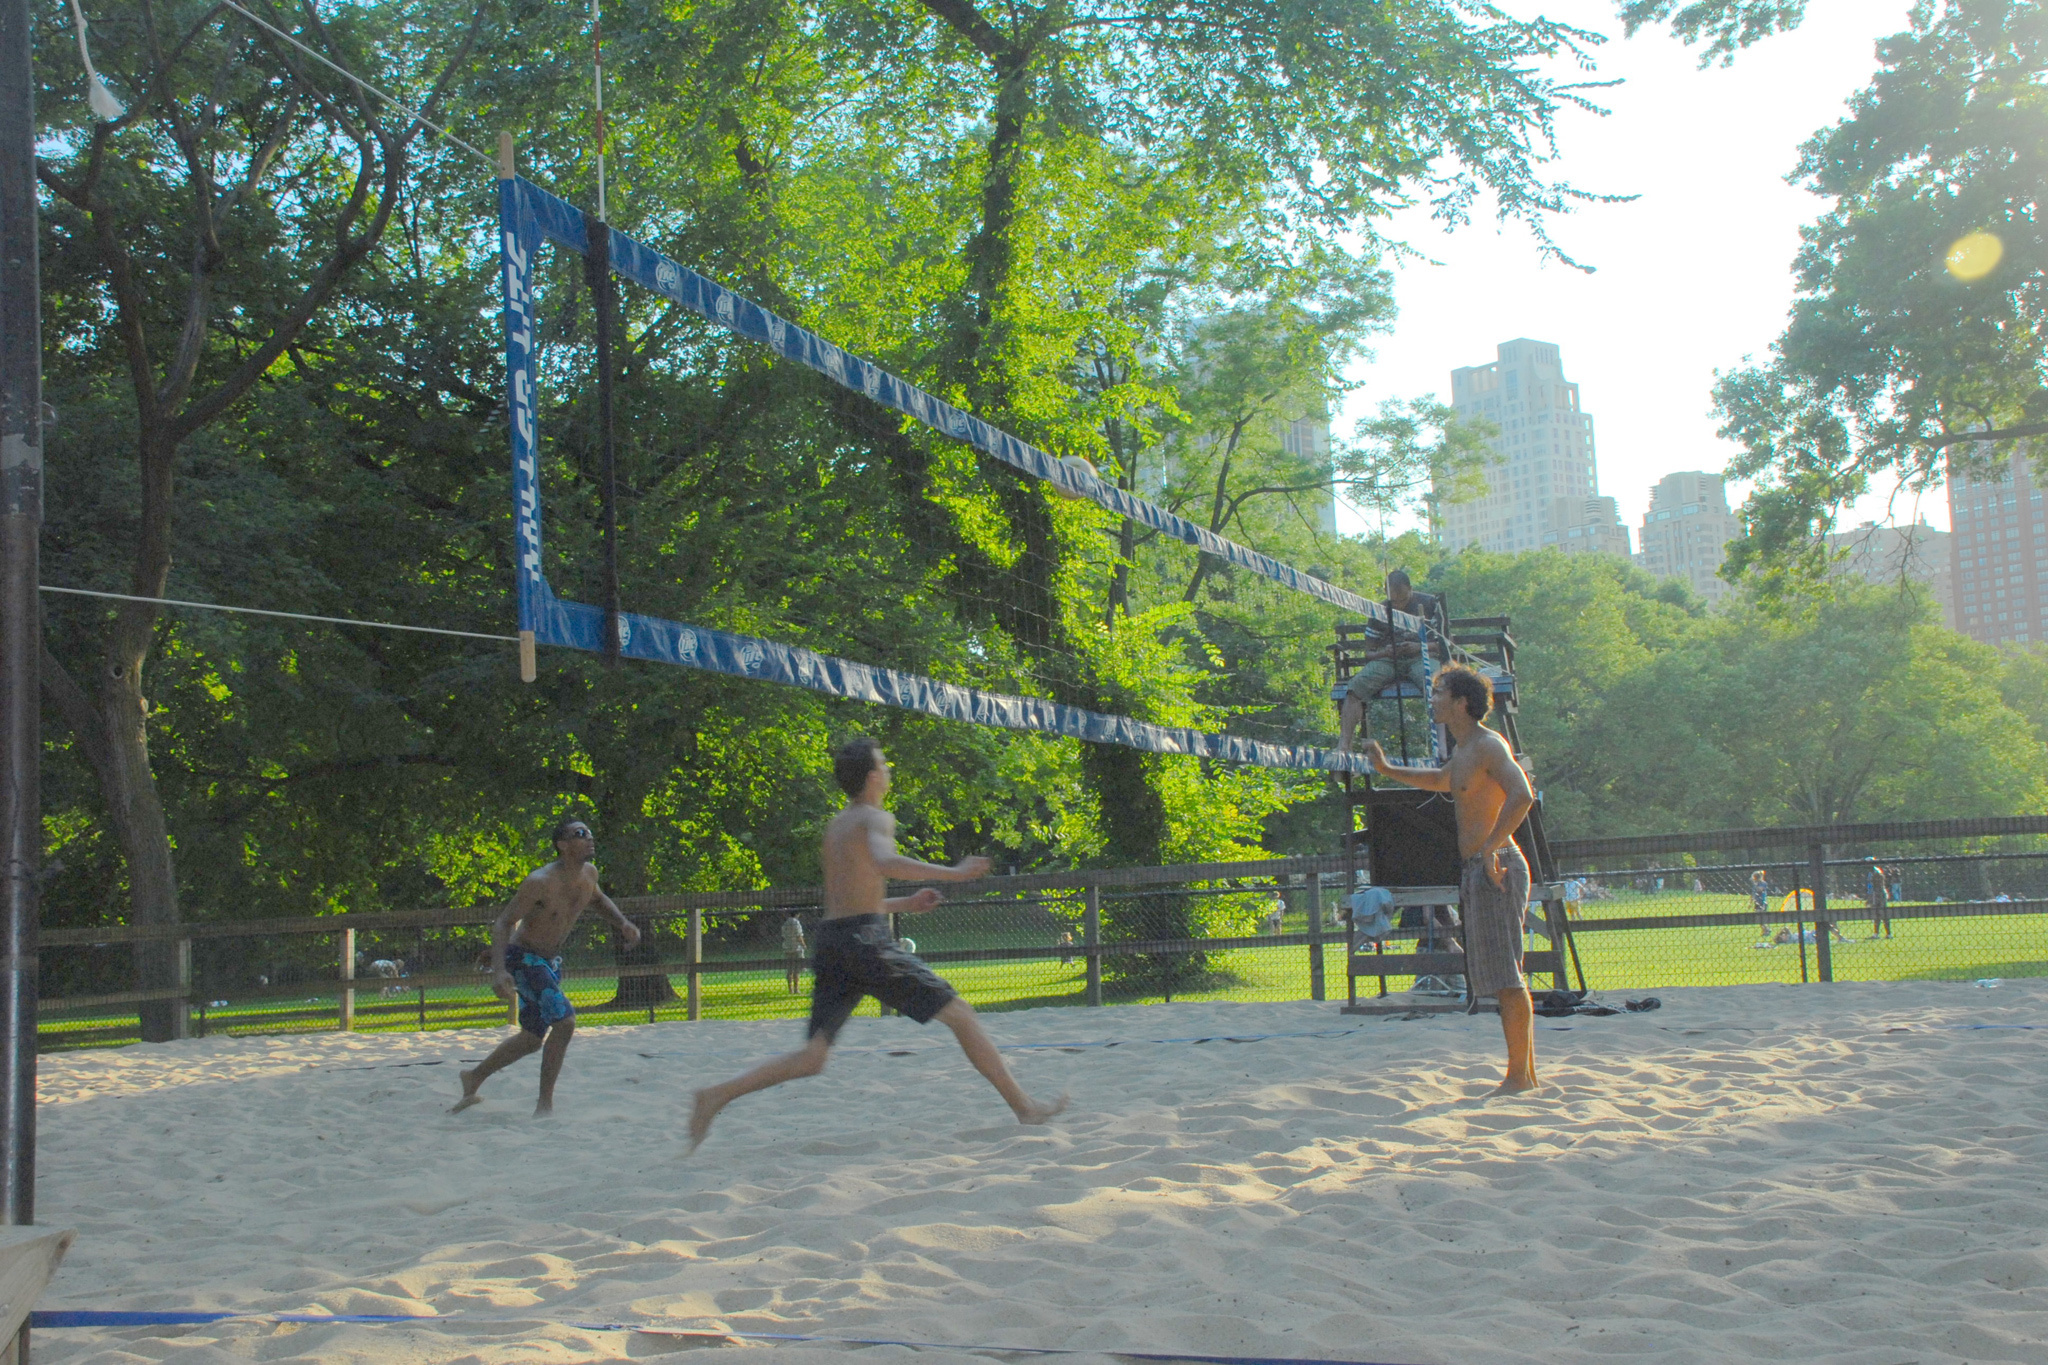 Bump, set, spike and show off at an outdoor volleyball court